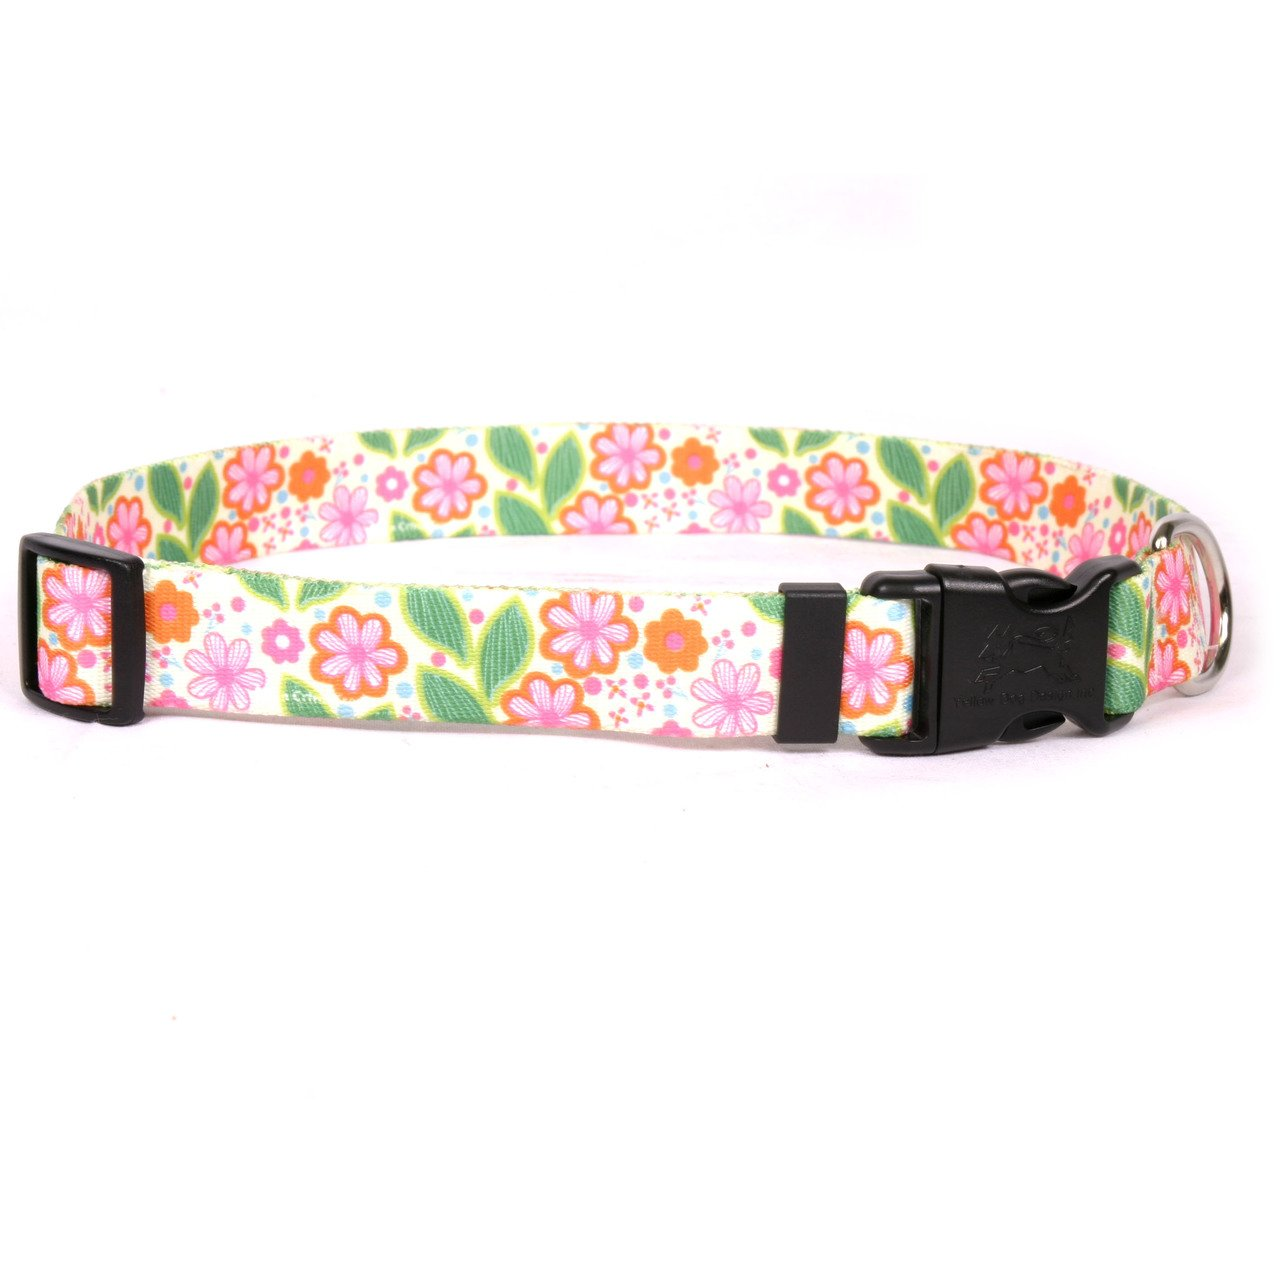 Yellow Dog Design Flower Patch Dog Collar 3/8'' Wide and Fits Neck 8 to 12'', X-Small